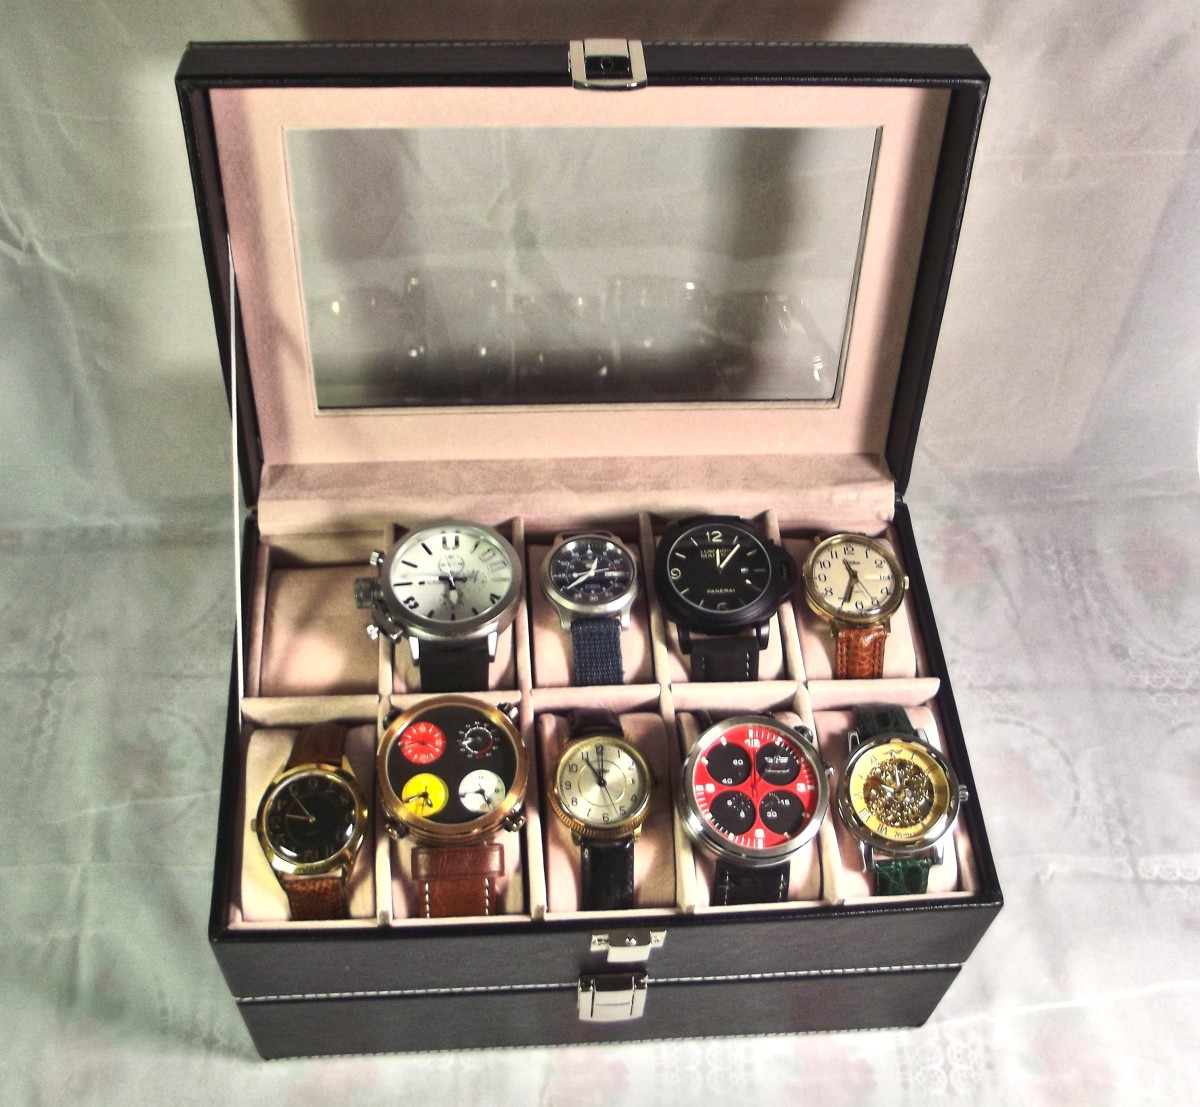 Review of a Double-Layer, 20-Grid, PU Leather Watch Display Case